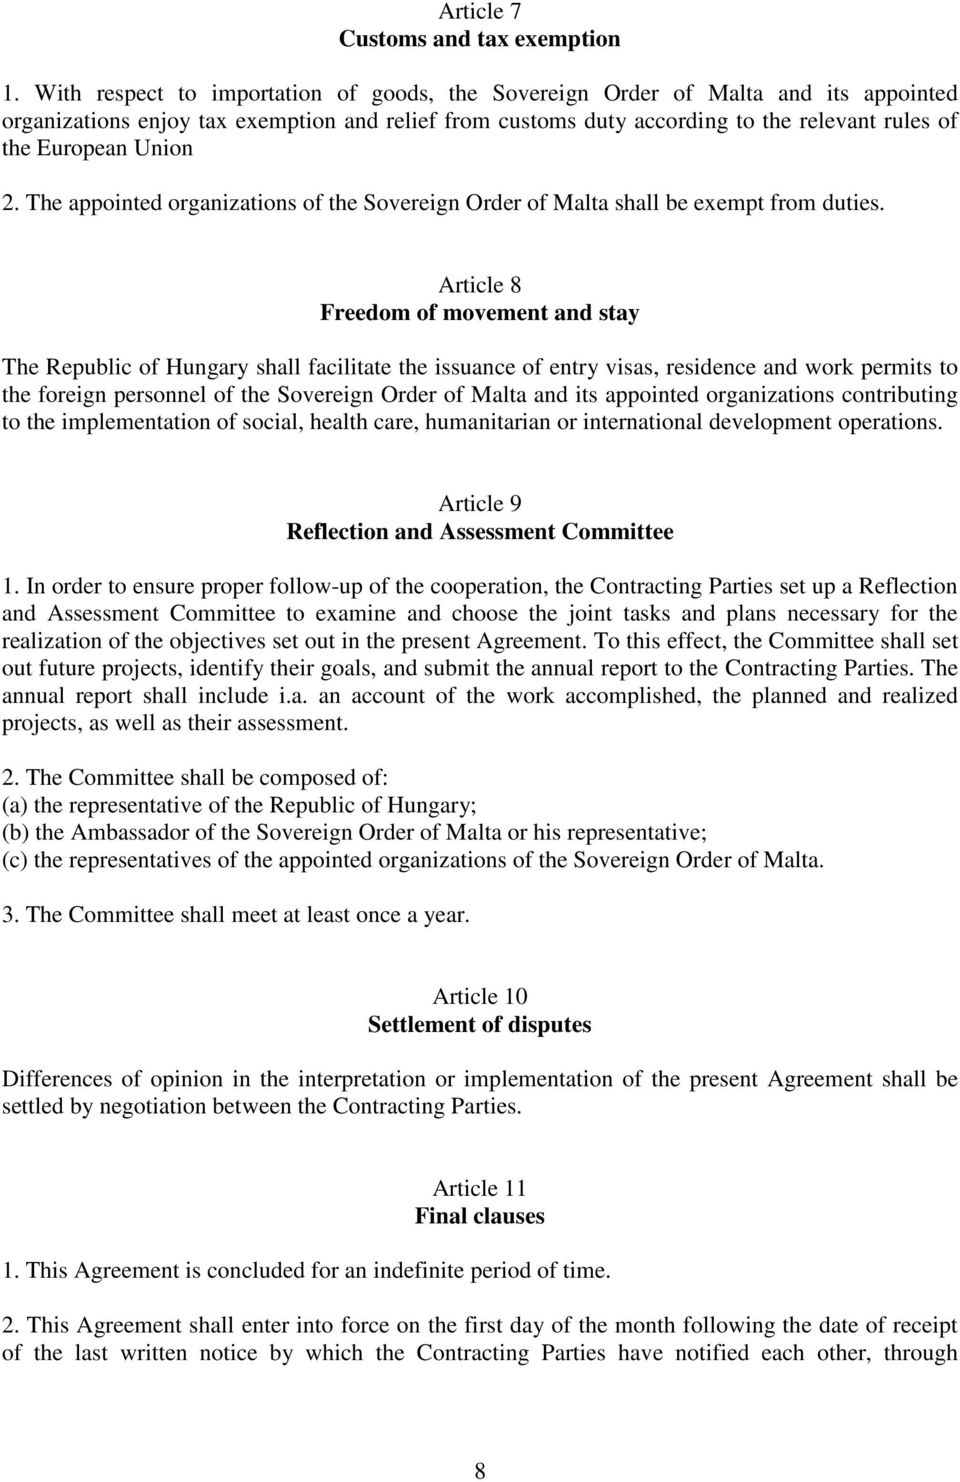 Union 2. The appointed organizations of the Sovereign Order of Malta shall be exempt from duties.